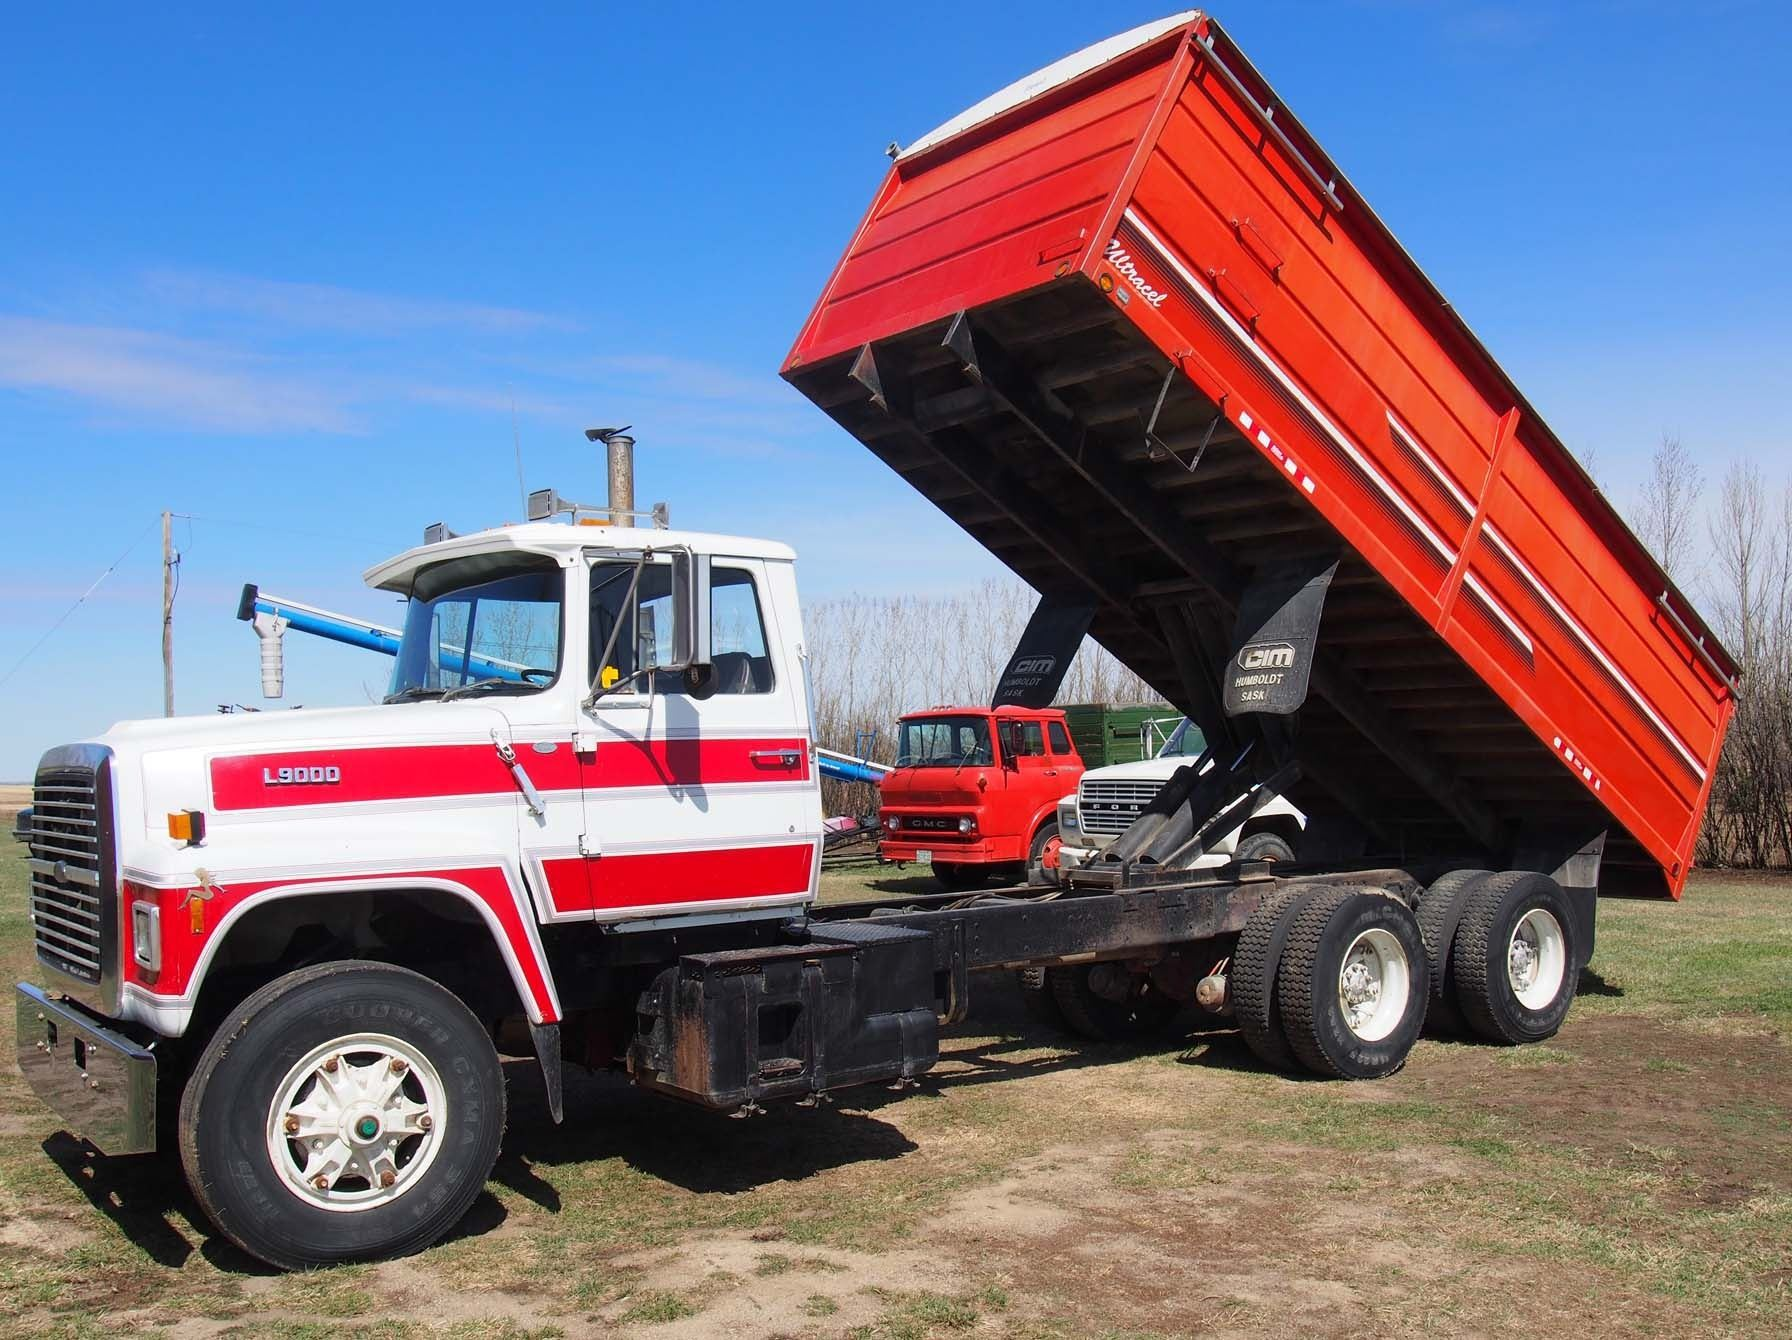 hight resolution of  image 11 1988 ford l9000 tandem truck 855 cummings engine 20 box and